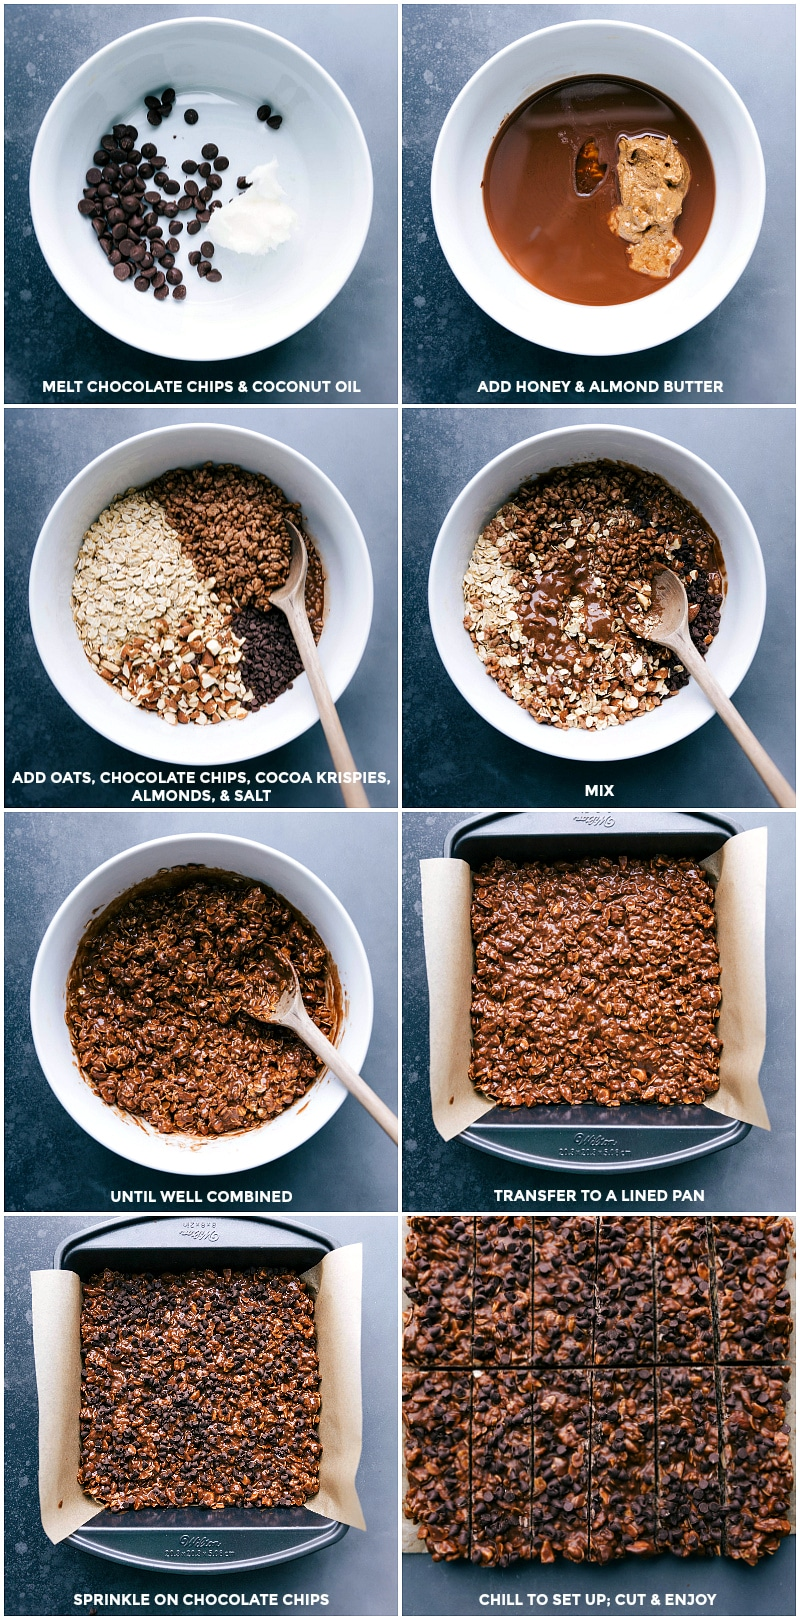 Process shots for Chocolate Granola Bars: melt chocolate chips and coconut oil; add honey and almond butter; add oats, chocolate, cereal almonds and salt; mix until well combined; transfer to a lined pan; sprinkle on chocolate chips; chill to firm up.